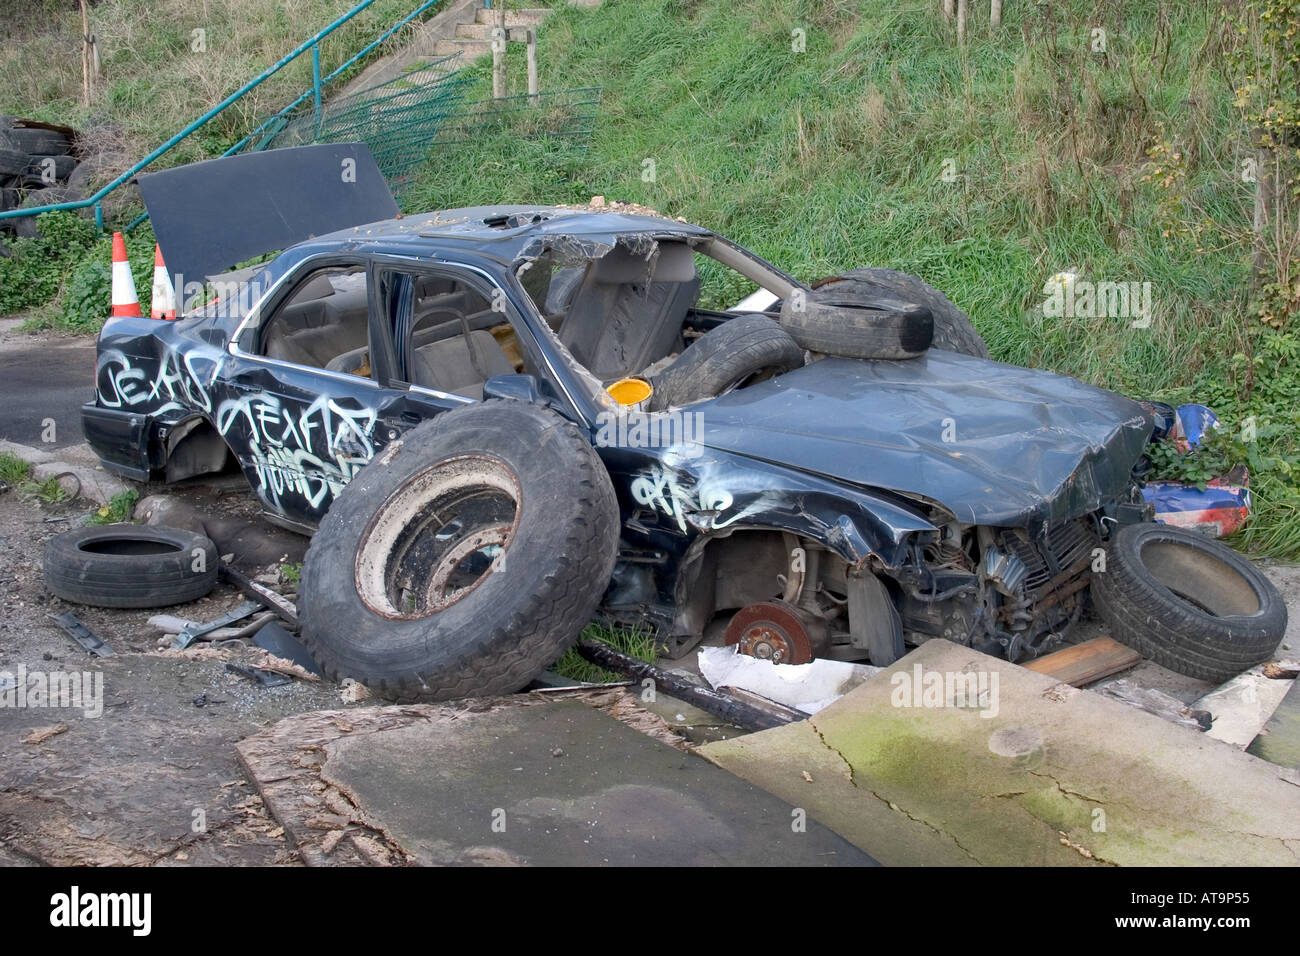 Wrecked Car High Resolution Stock Photography and Images - Alamy